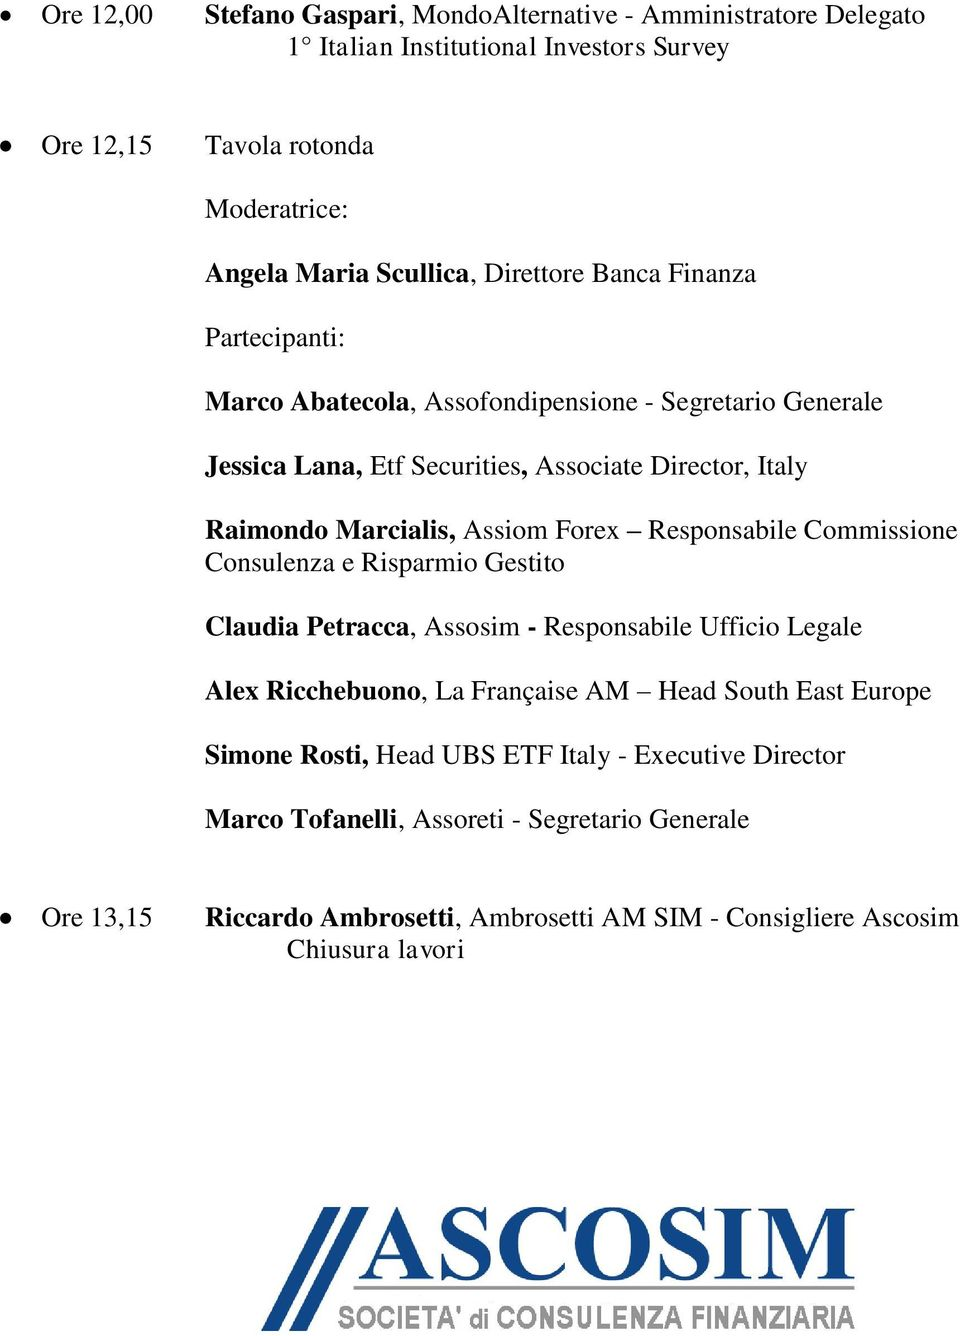 Forex Responsabile Commissione Consulenza e Risparmio Gestito Claudia Petracca, Assosim - Responsabile Ufficio Legale Alex Ricchebuono, La Française AM Head South East Europe